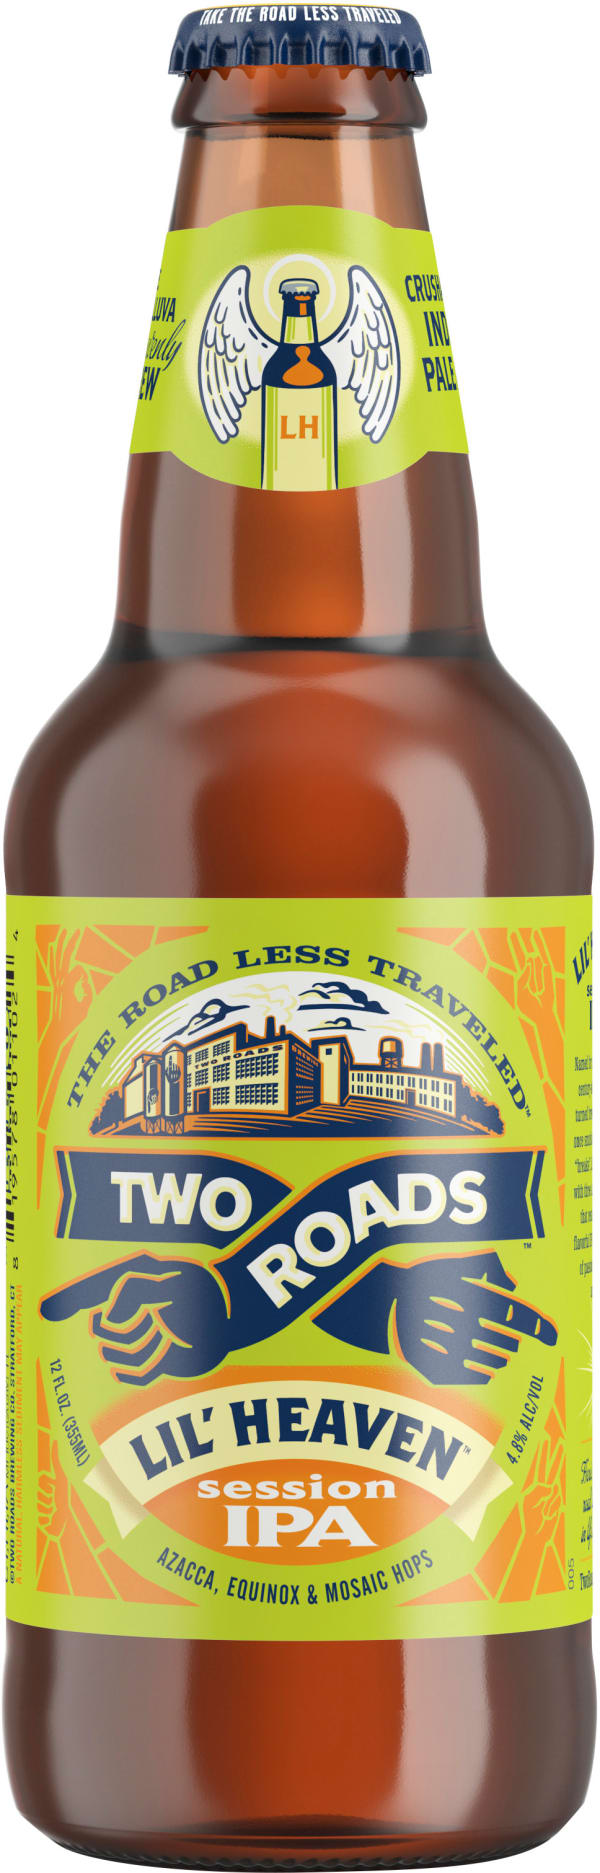 Two Roads Lil haven Session IPA